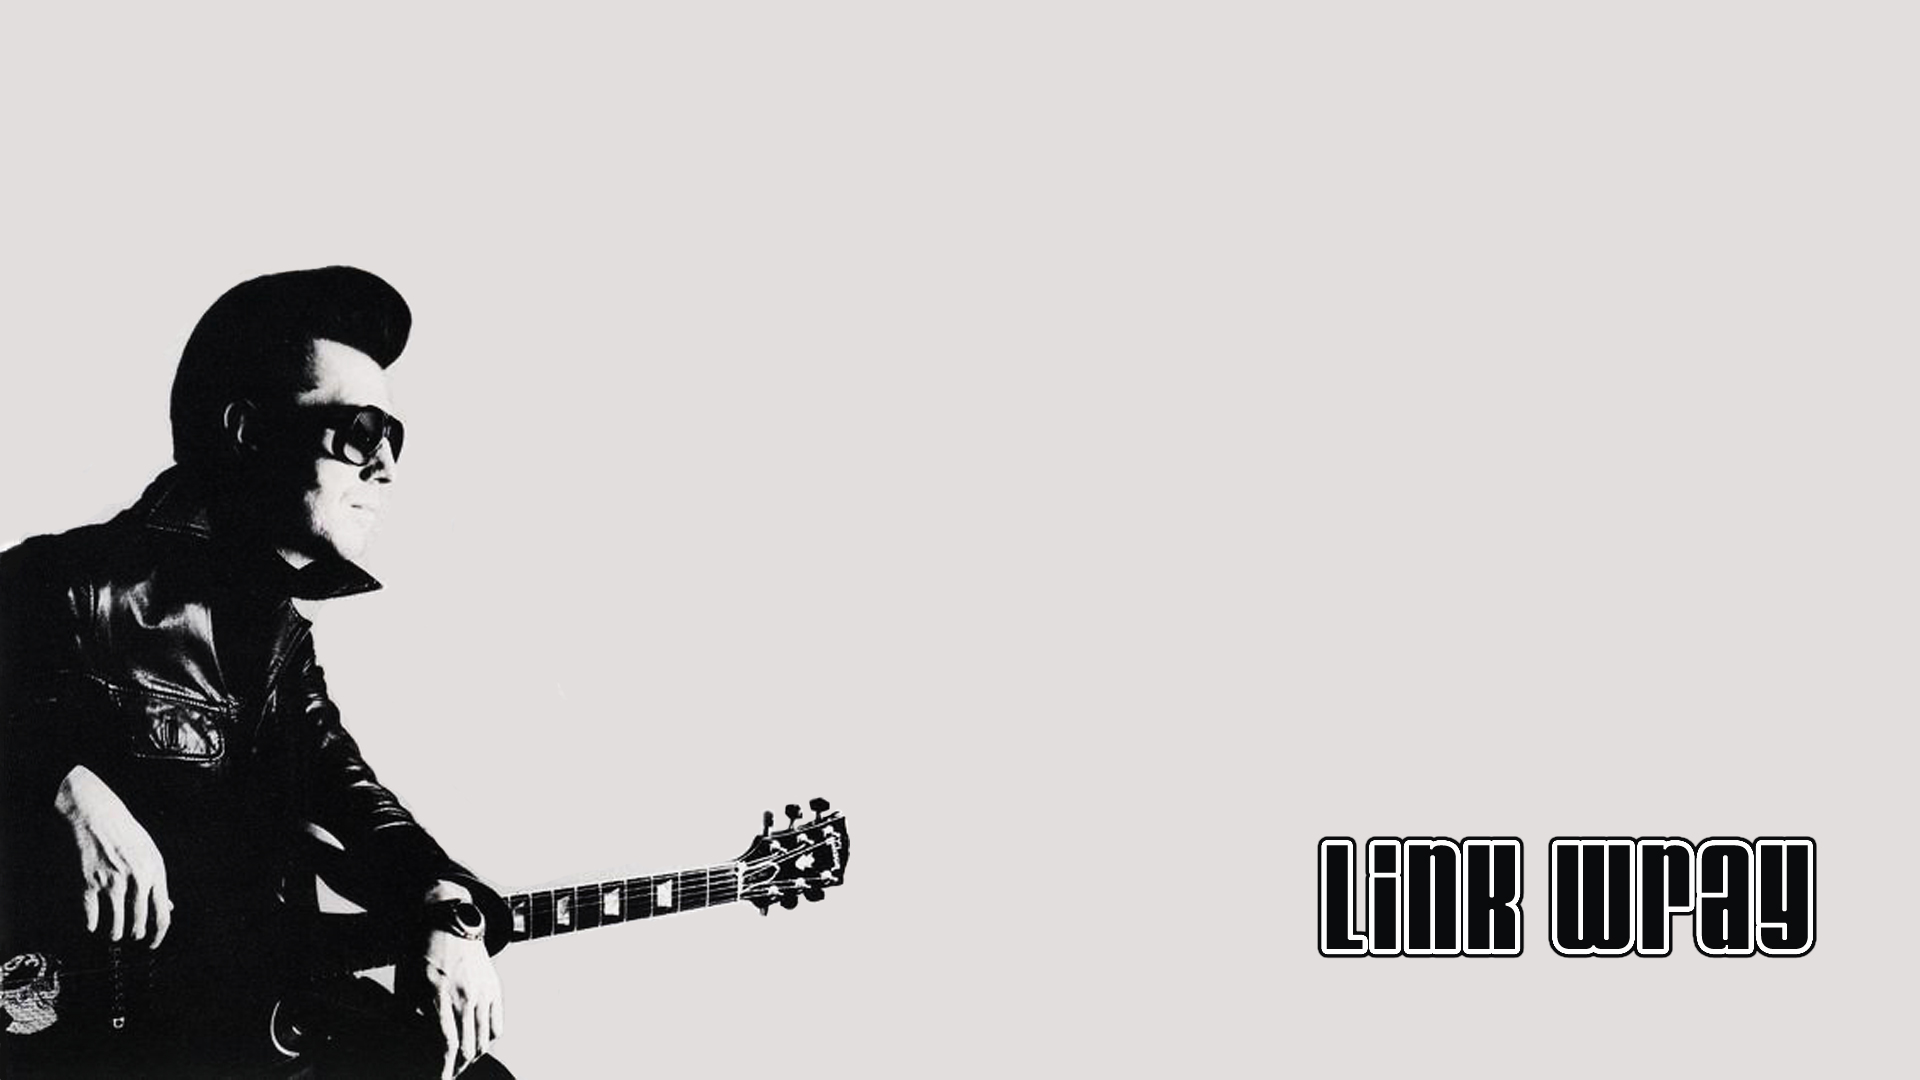 Another Link Wray Wallpaper [1920x1080] ...